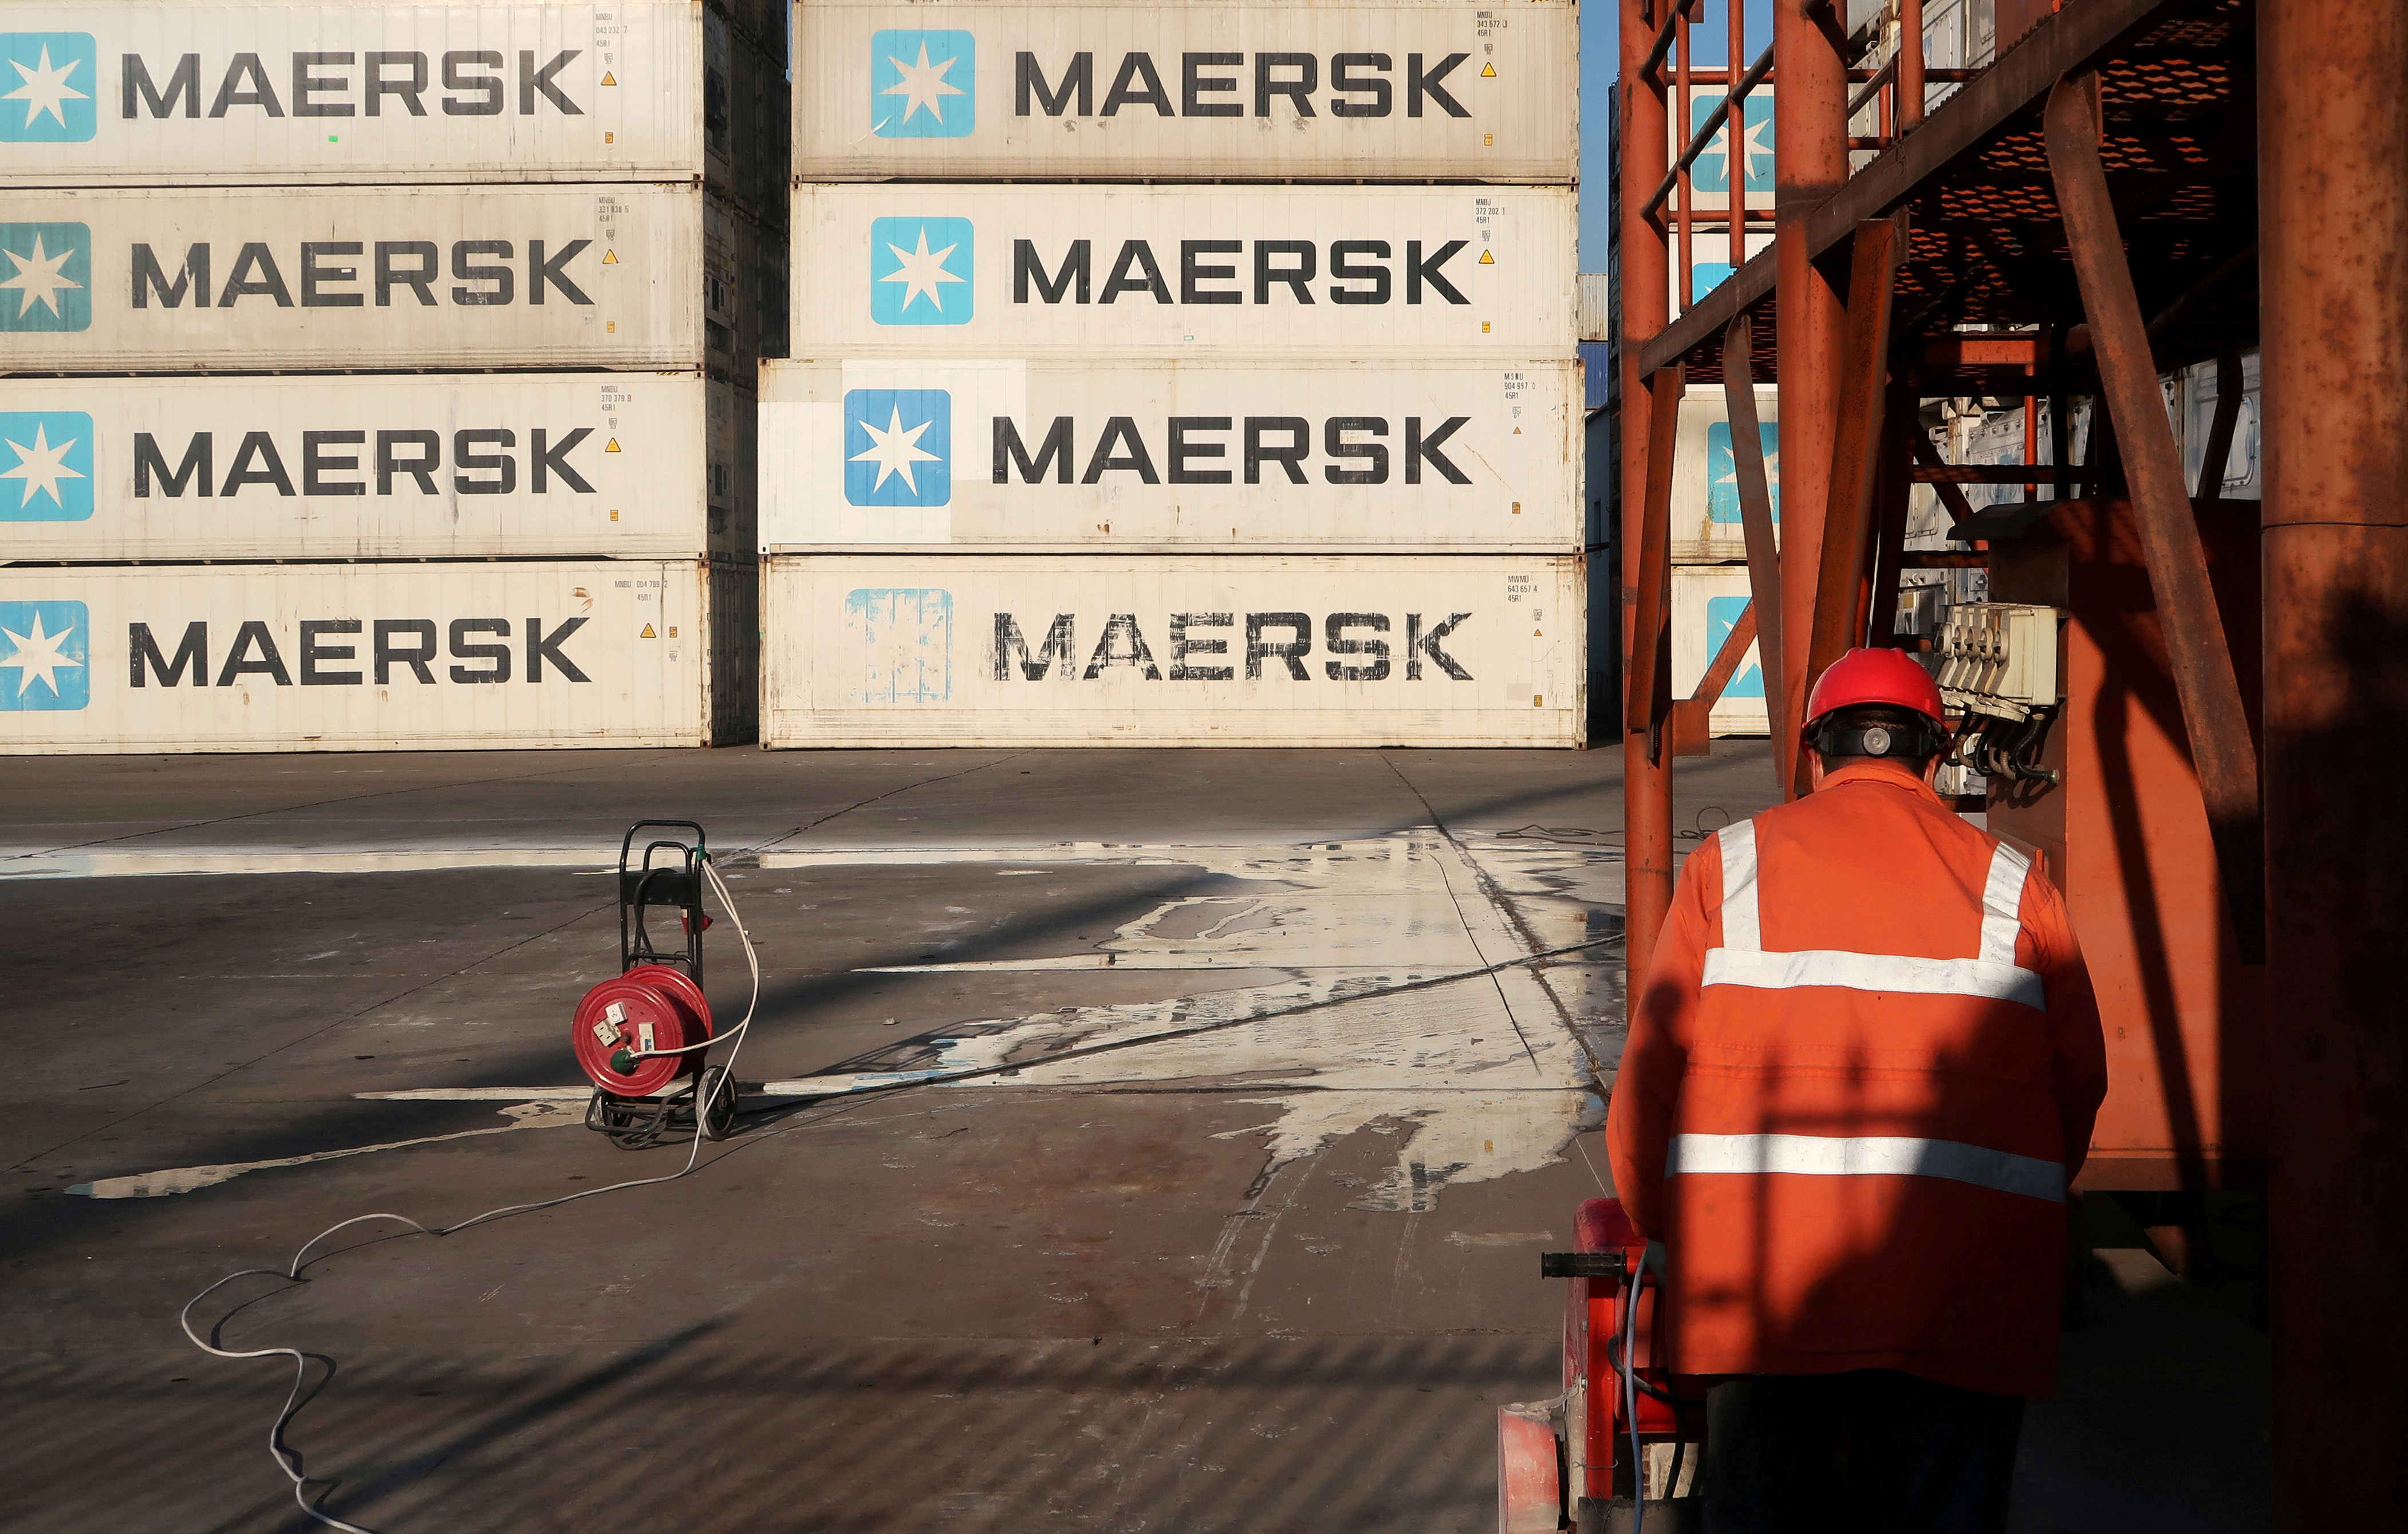 A worker is seen next to Maersk shipping containers at a logistics center nearTianjin port, in Tianjin, China December 12, 2019. REUTERS/Yilei Sun